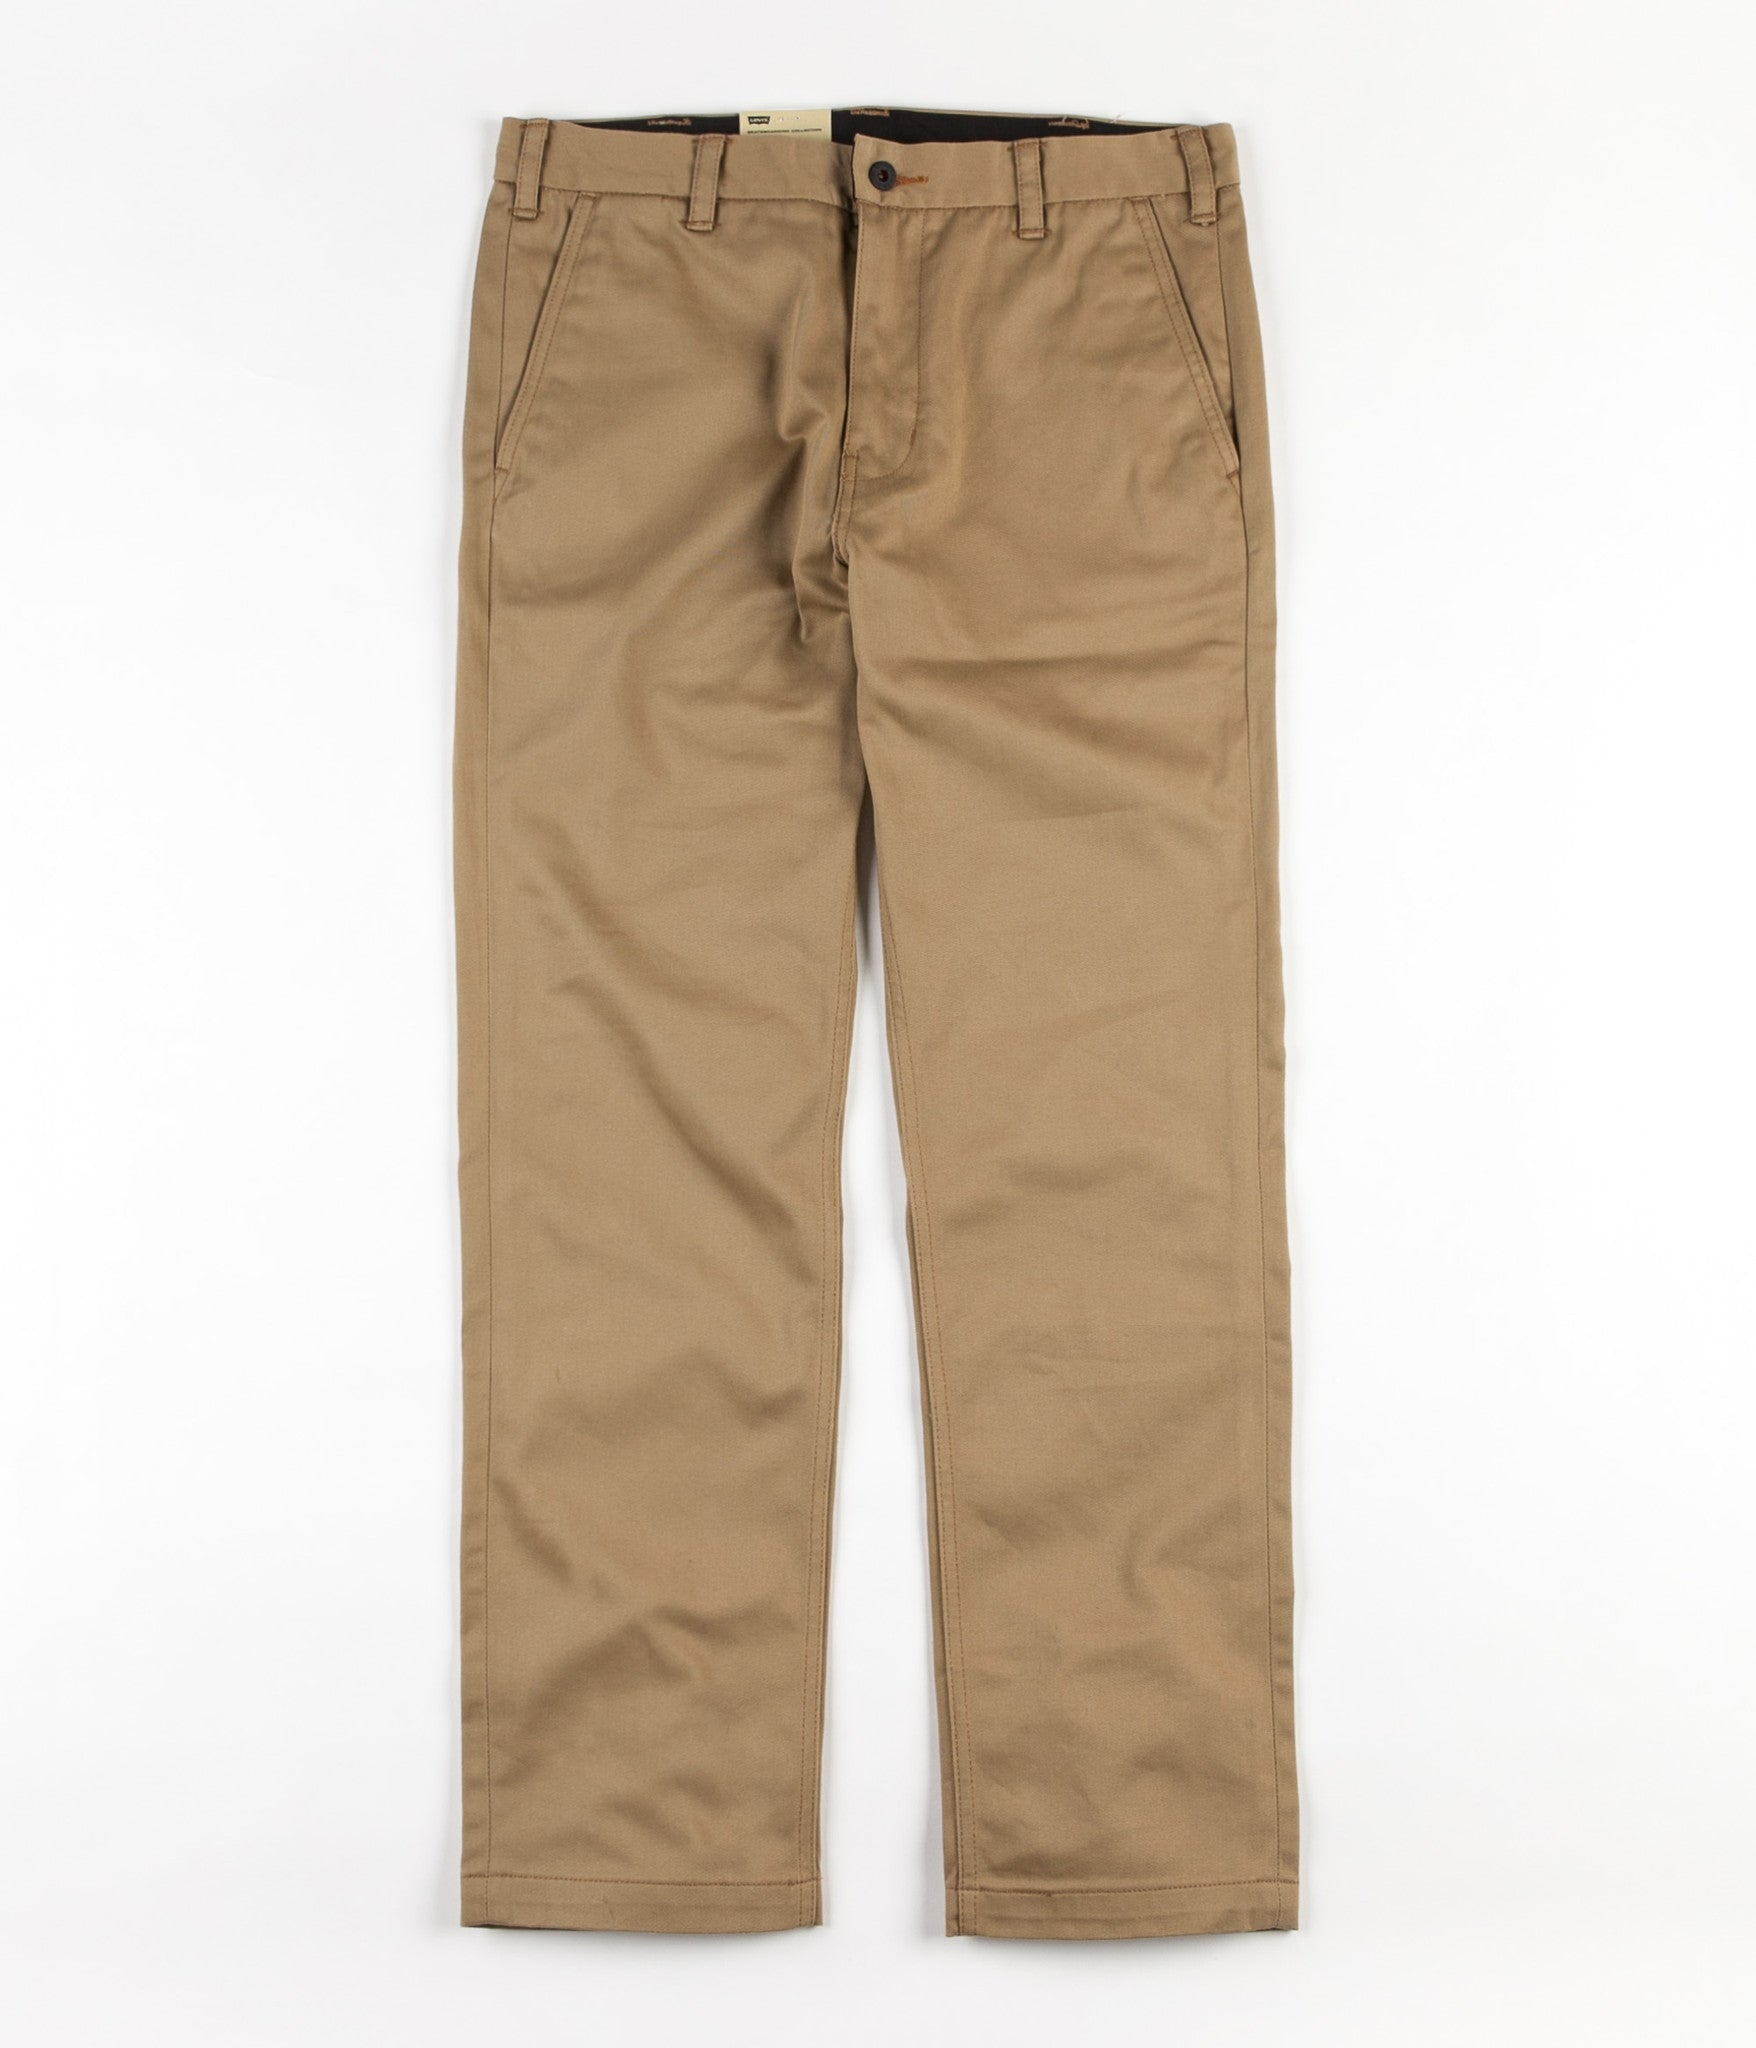 Levi's® Skate Work Trousers - Harvest Gold